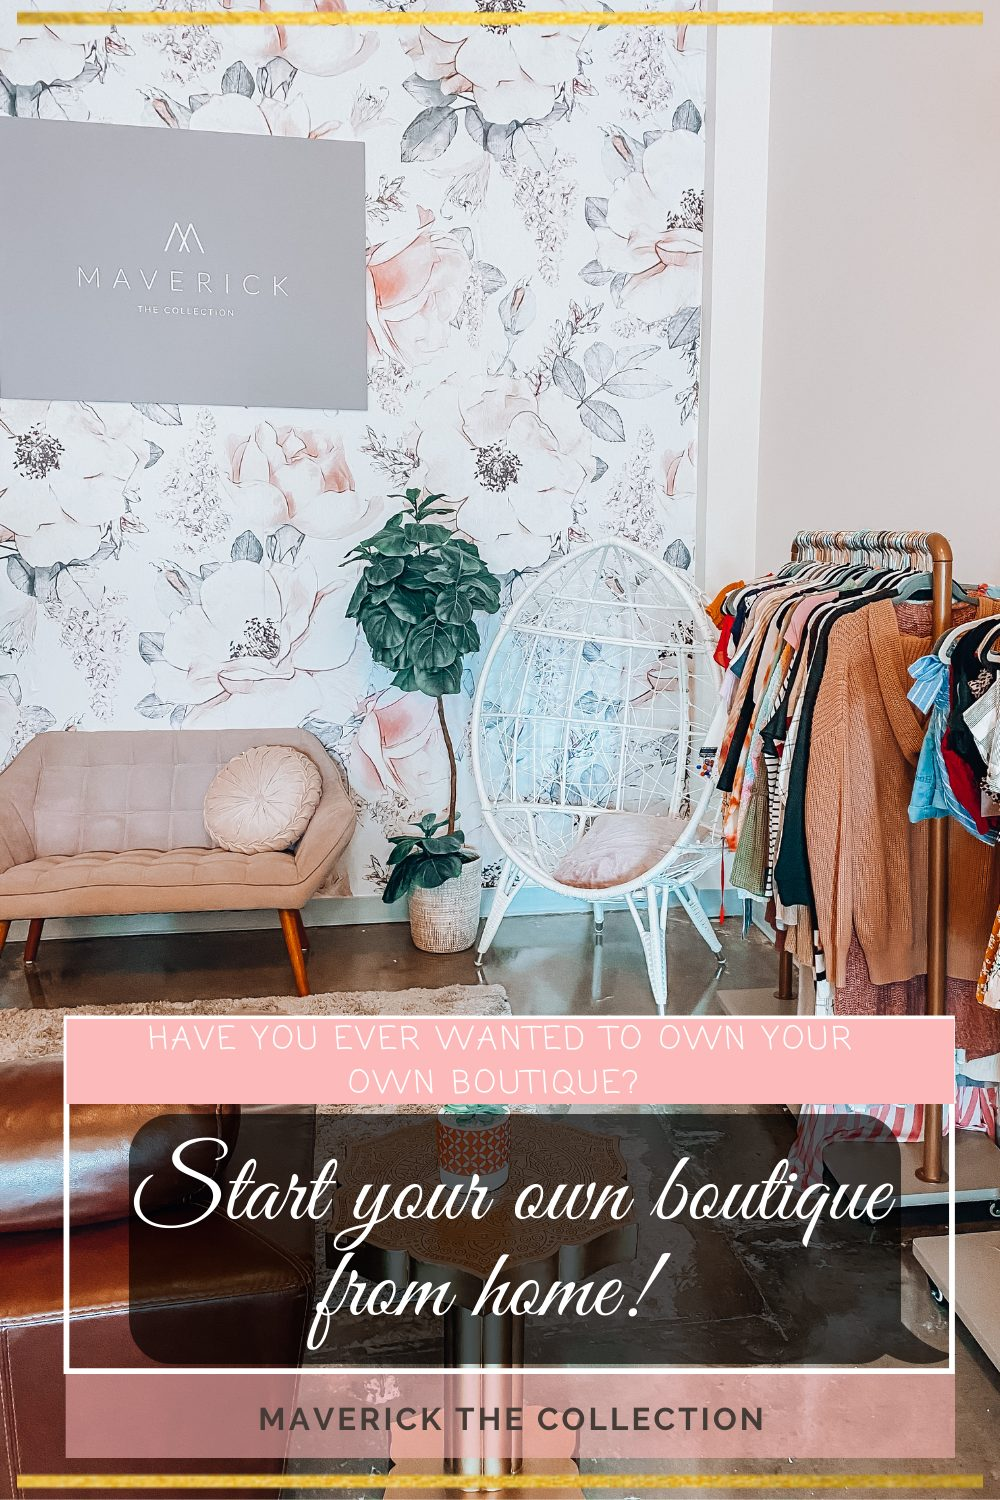 Own your own boutique right from home!